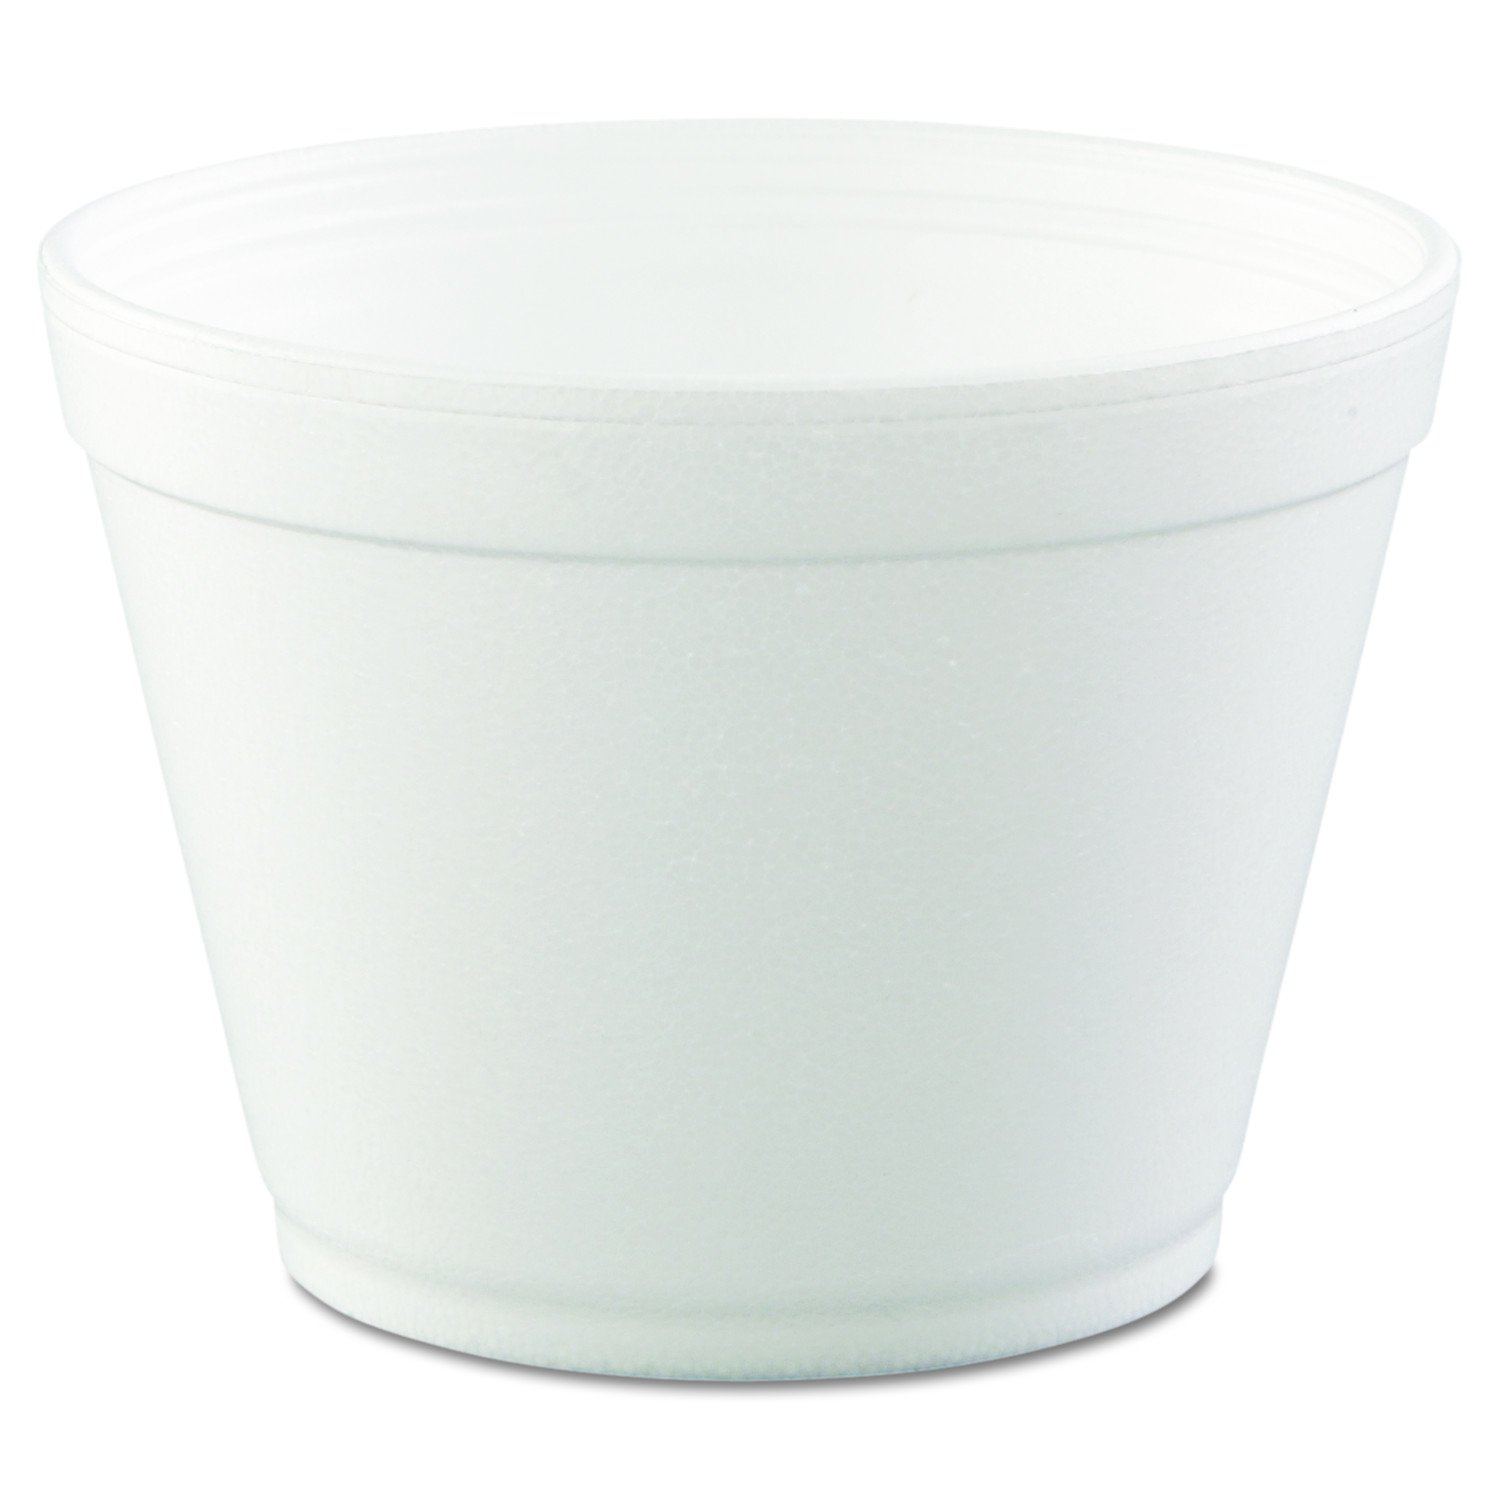 Dart 16MJ32 Foam Containers,16oz, White, 25 per Bag (Case of 20 Bags) by DART